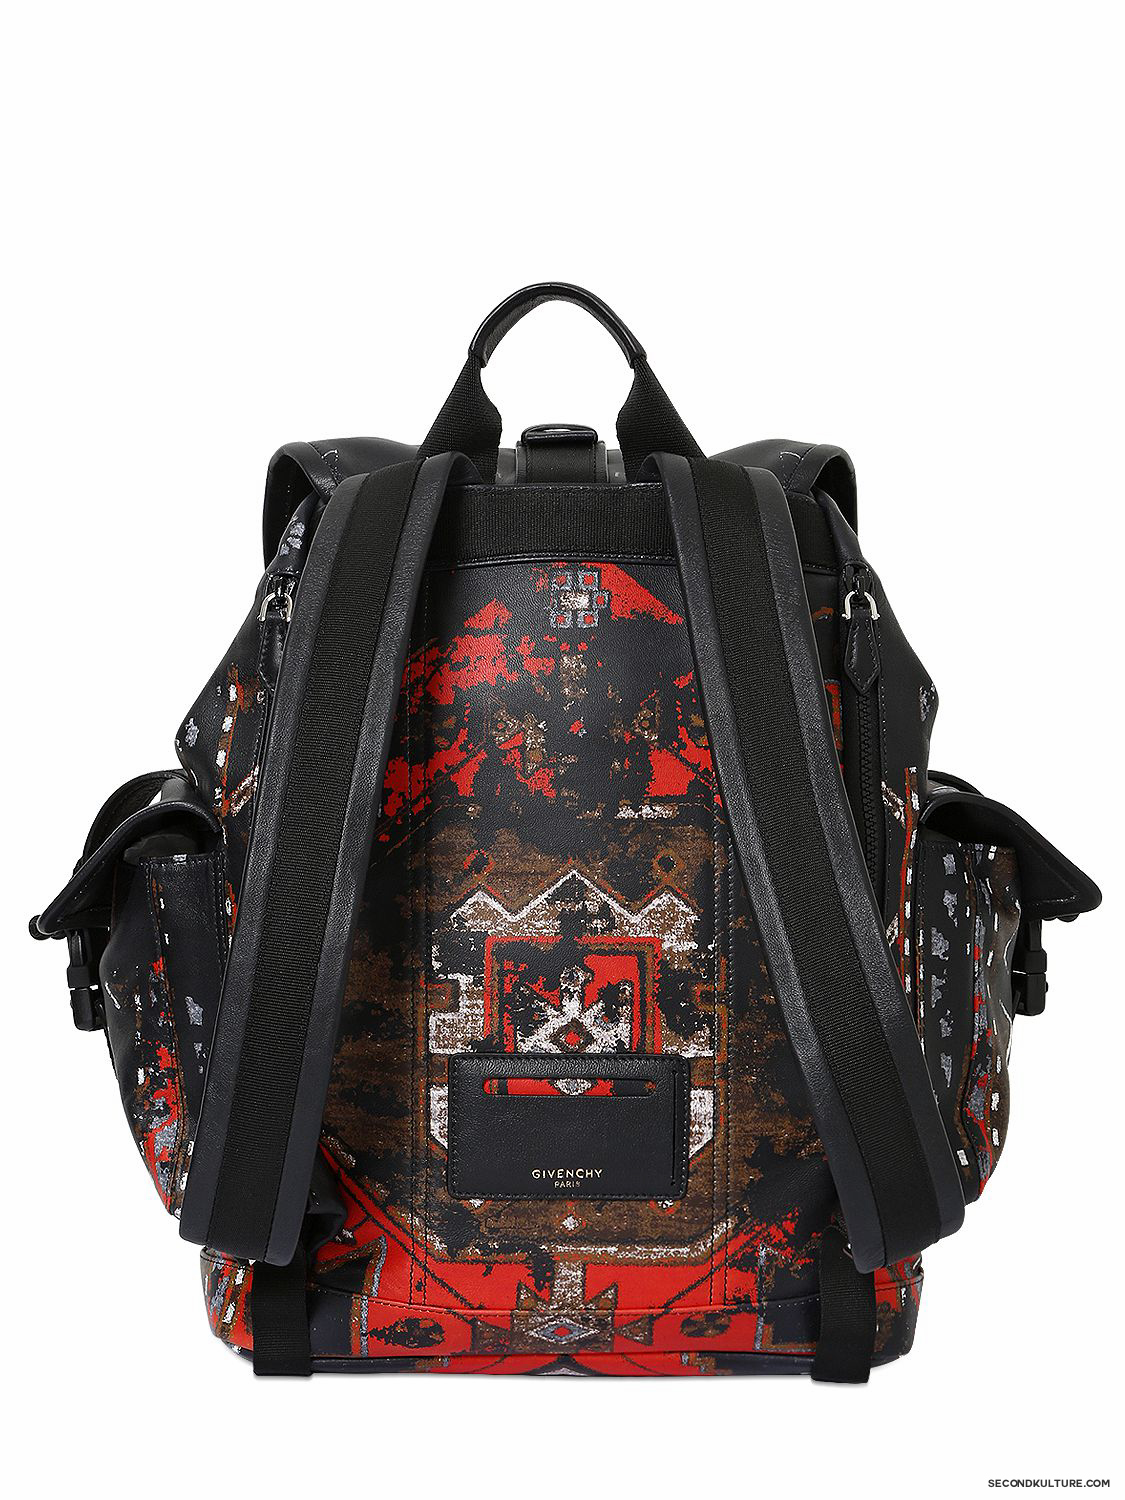 Givenchy-Native-American-Carpet-Degraded-Print-Obsedia-Leather-Backpack-Fall-Winter-2015-2